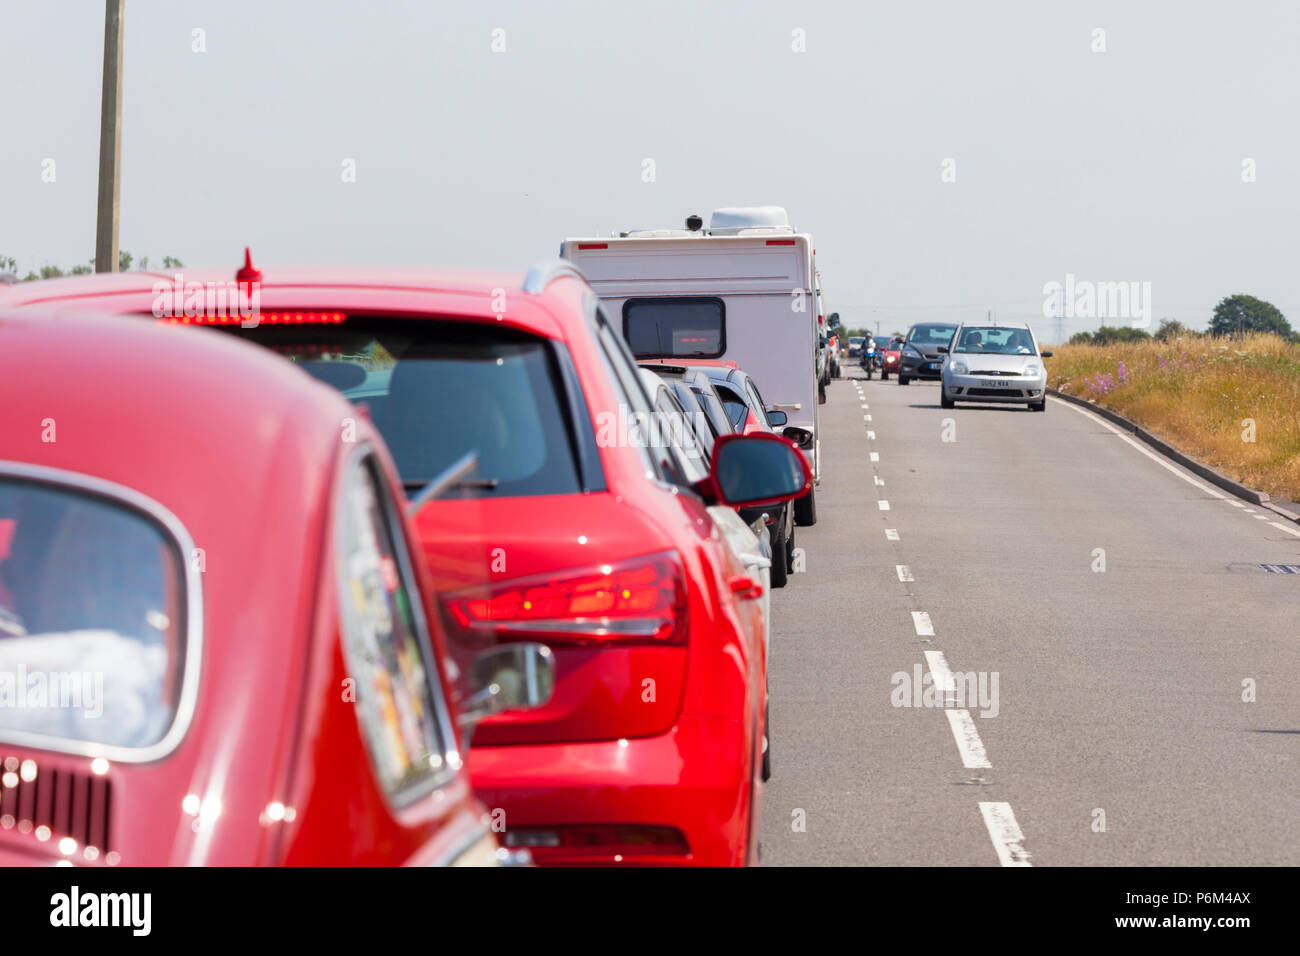 Camber Sands, East Sussex, UK. 1st Jul, 2018. UK Weather: Traffic congestion off the A259 heading towards Camber Sands in East Sussex with queues bumper to bumper for as far as the eye can see. Temperatures of 28°C are expected in the area. © Paul Lawrenson 2018, Photo Credit: Paul Lawrenson / Alamy Live News - Stock Image